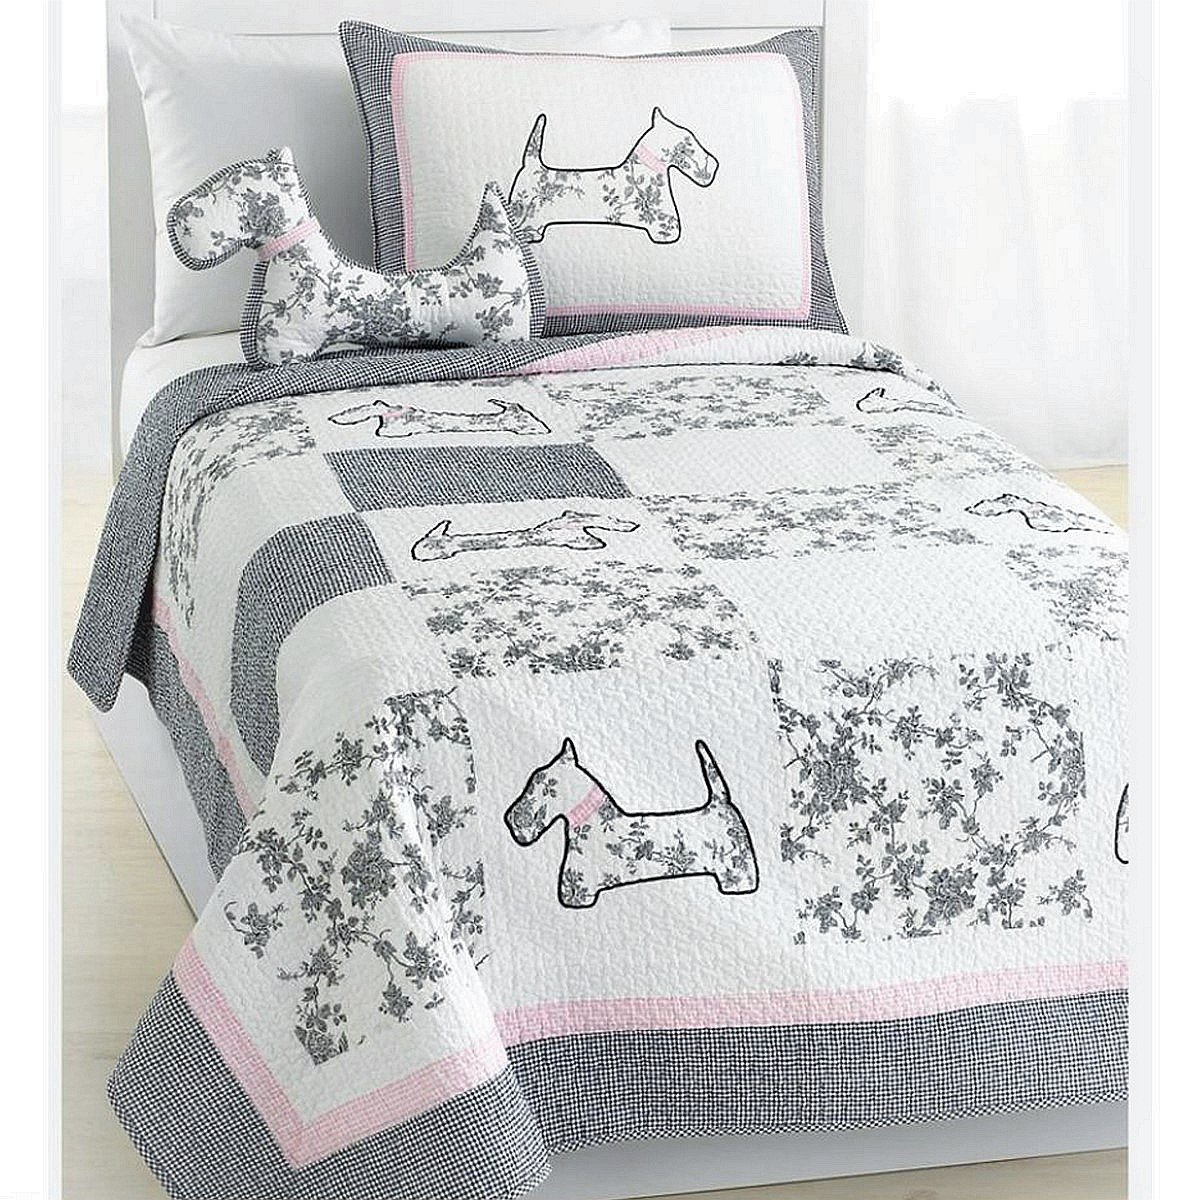 Cozy Line Home Fashions Scottie Pup Pink White Grey Dog Flower Pattern Printed Patchwork Cotton Bedding Quilt Set Coverlet Bedspreads(Grey/White, Queen - 3 Piece: 1 Quilt + 2 Standard Shams) by Cozy Line Home Fashions (Image #1)